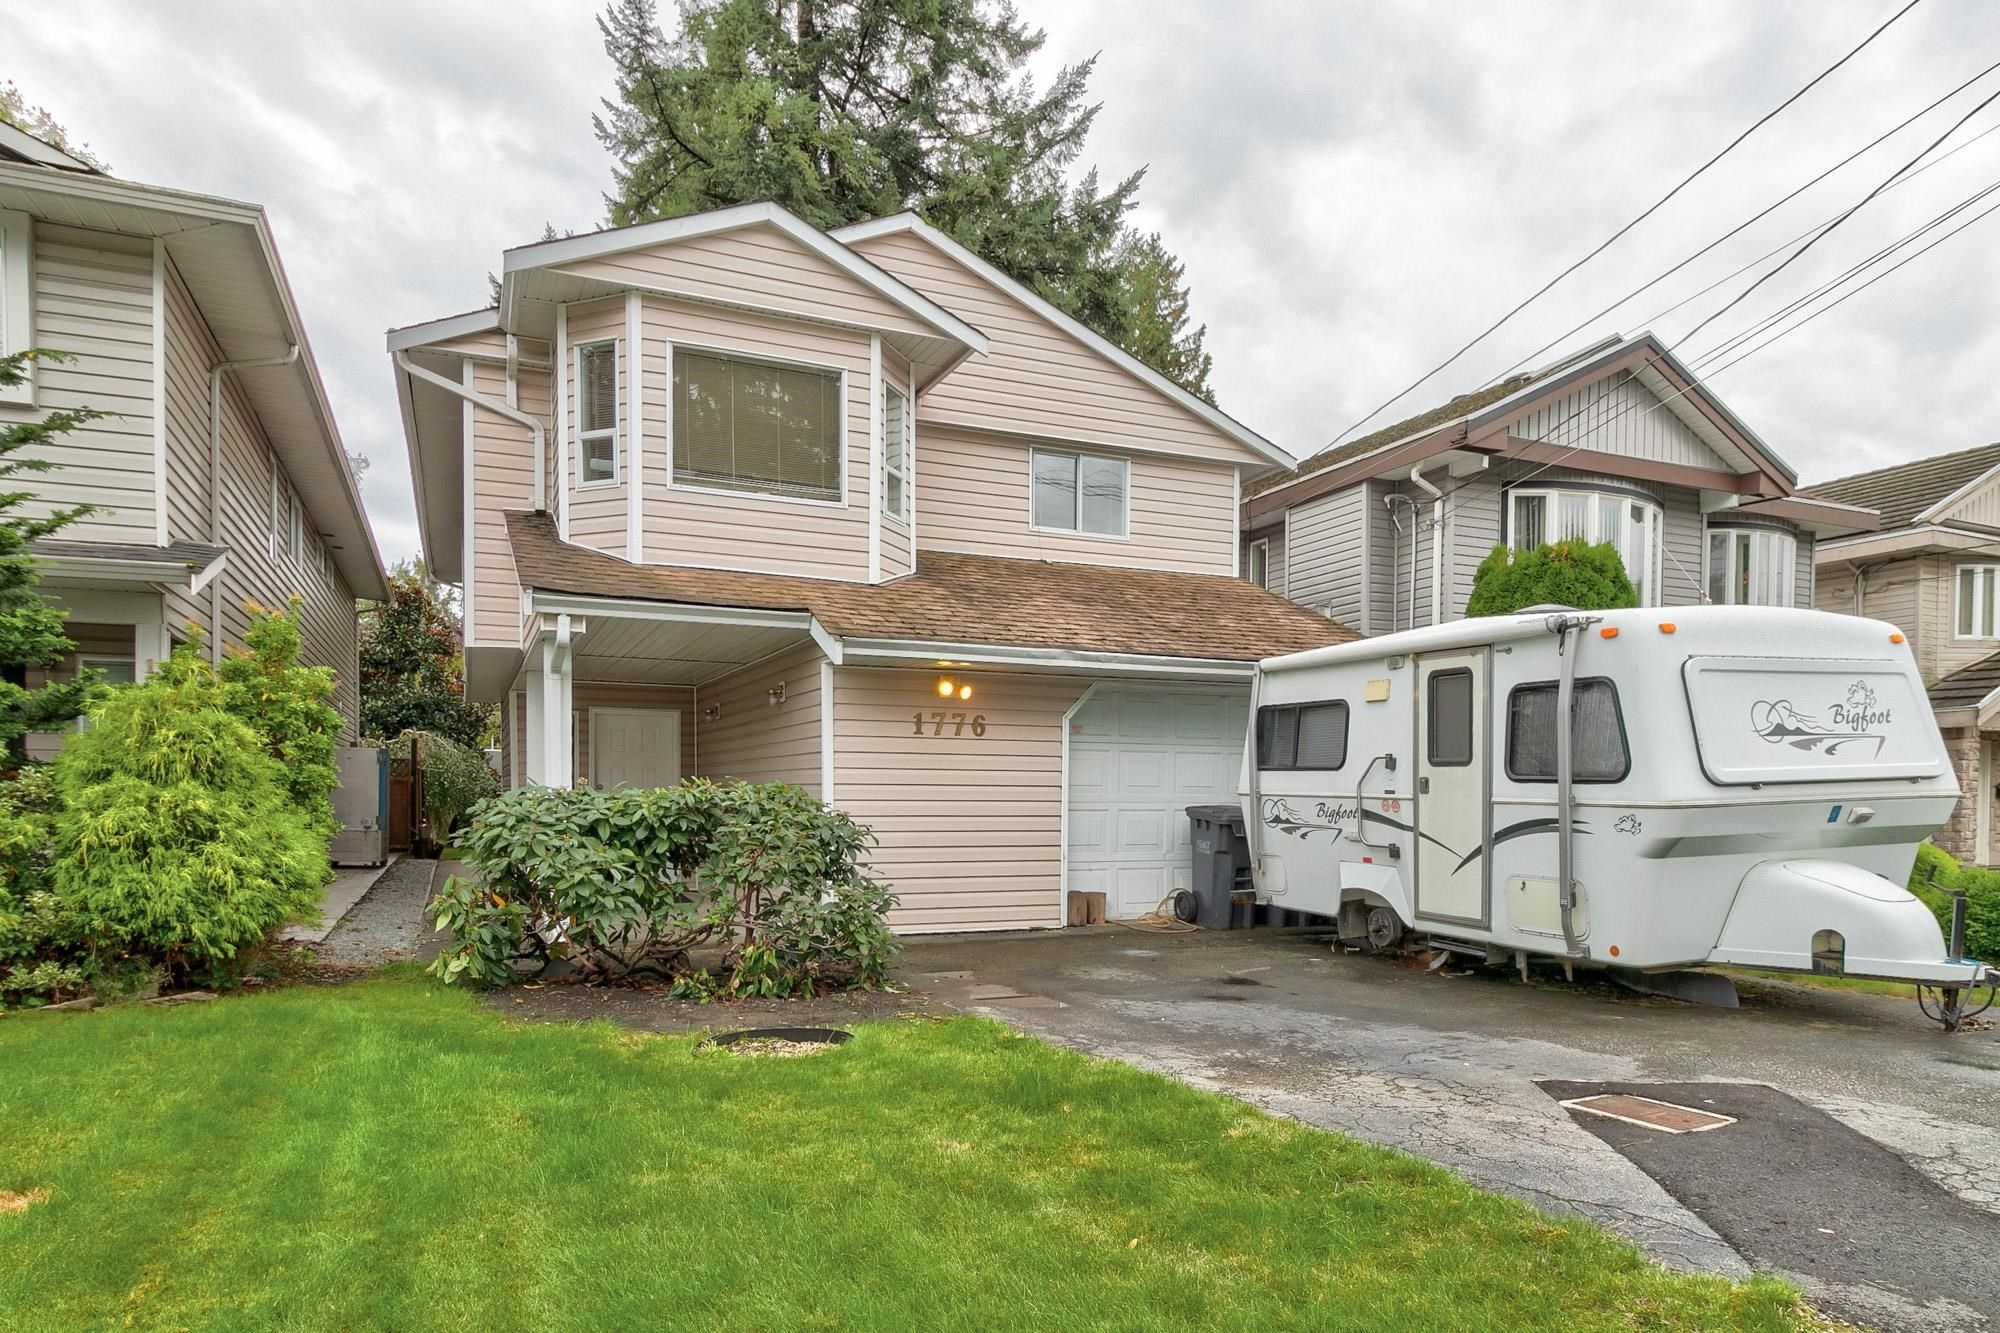 Main Photo: 1776 LANGAN Avenue in Port Coquitlam: Central Pt Coquitlam House for sale : MLS®# R2620273